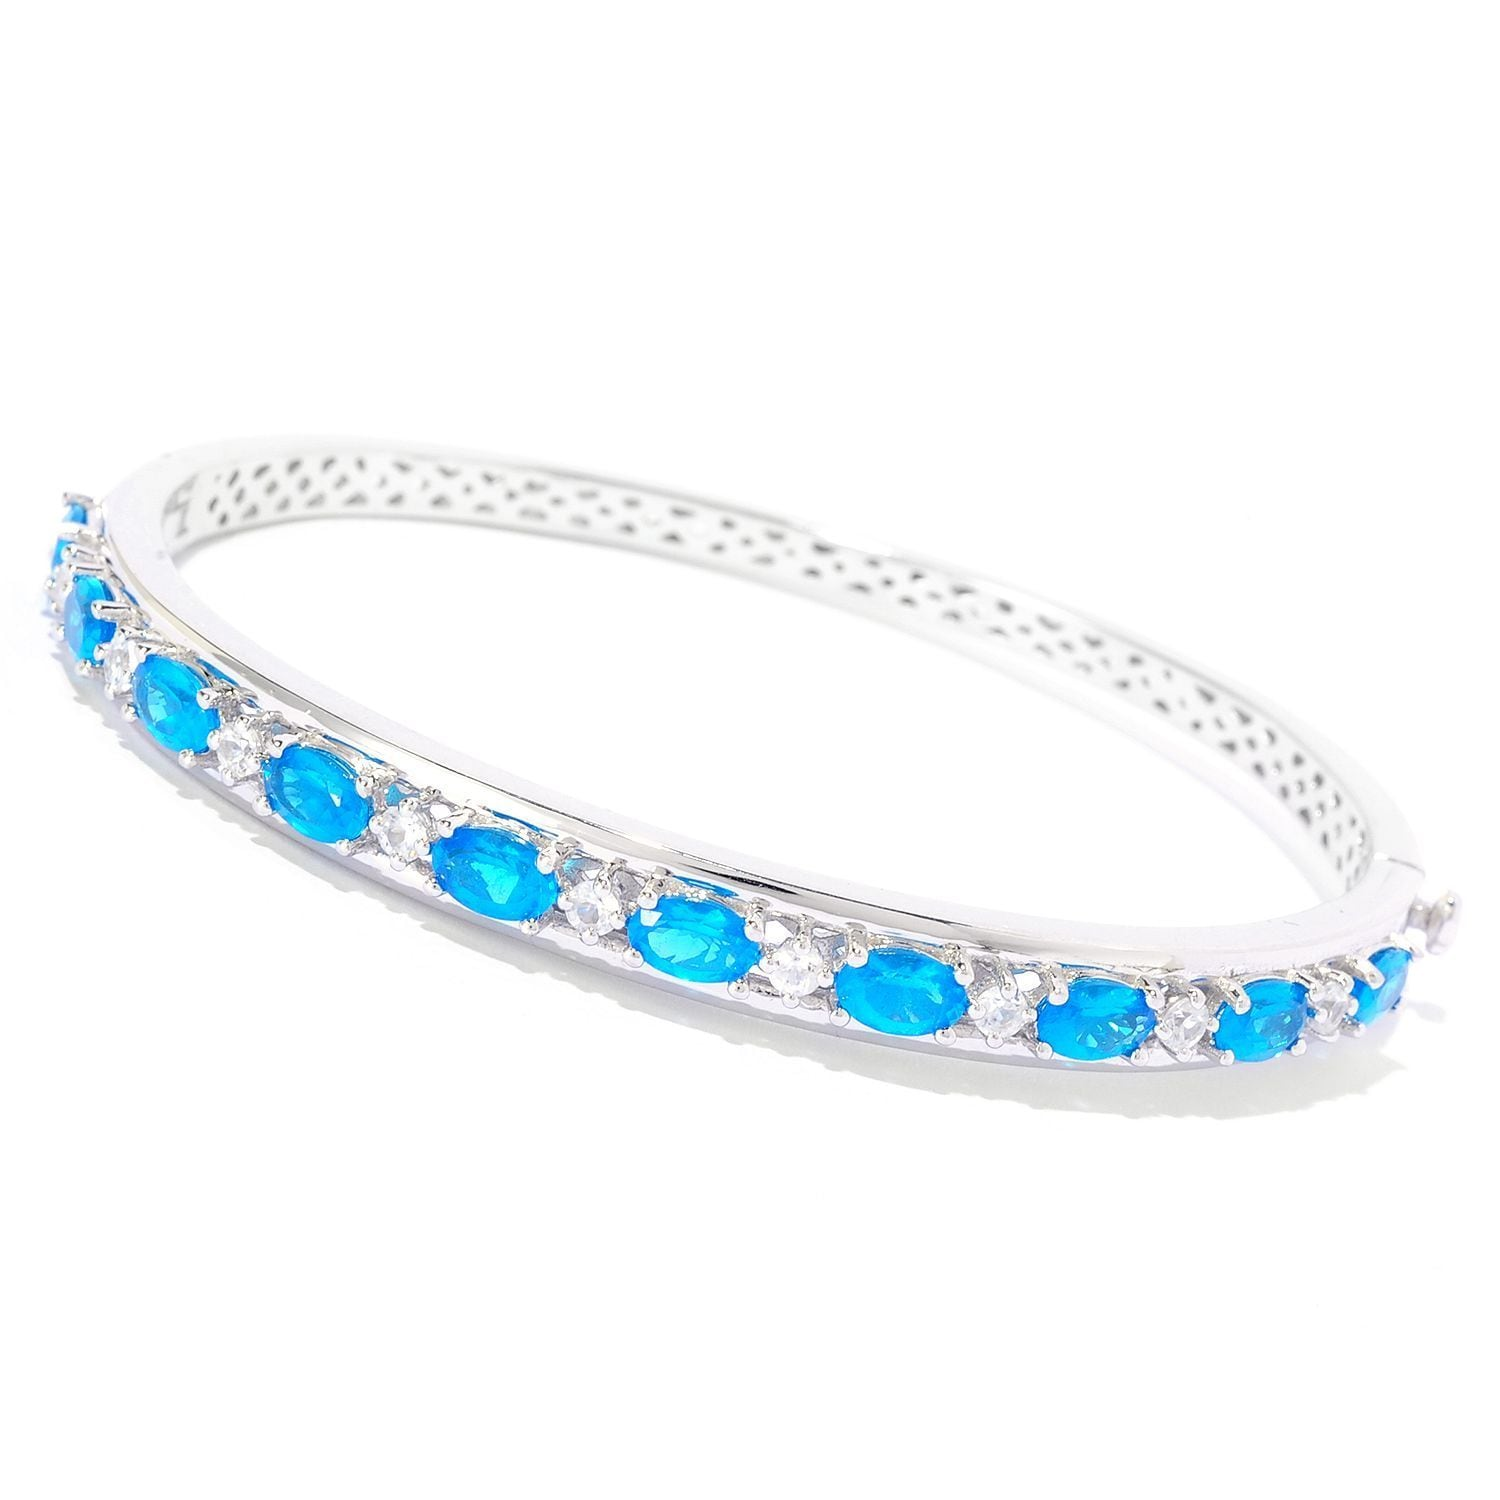 sterling grade crystal zen pure zircon products bracelet vibes korea bracelets real bangles cz cubic woman stylish silver jexxi top